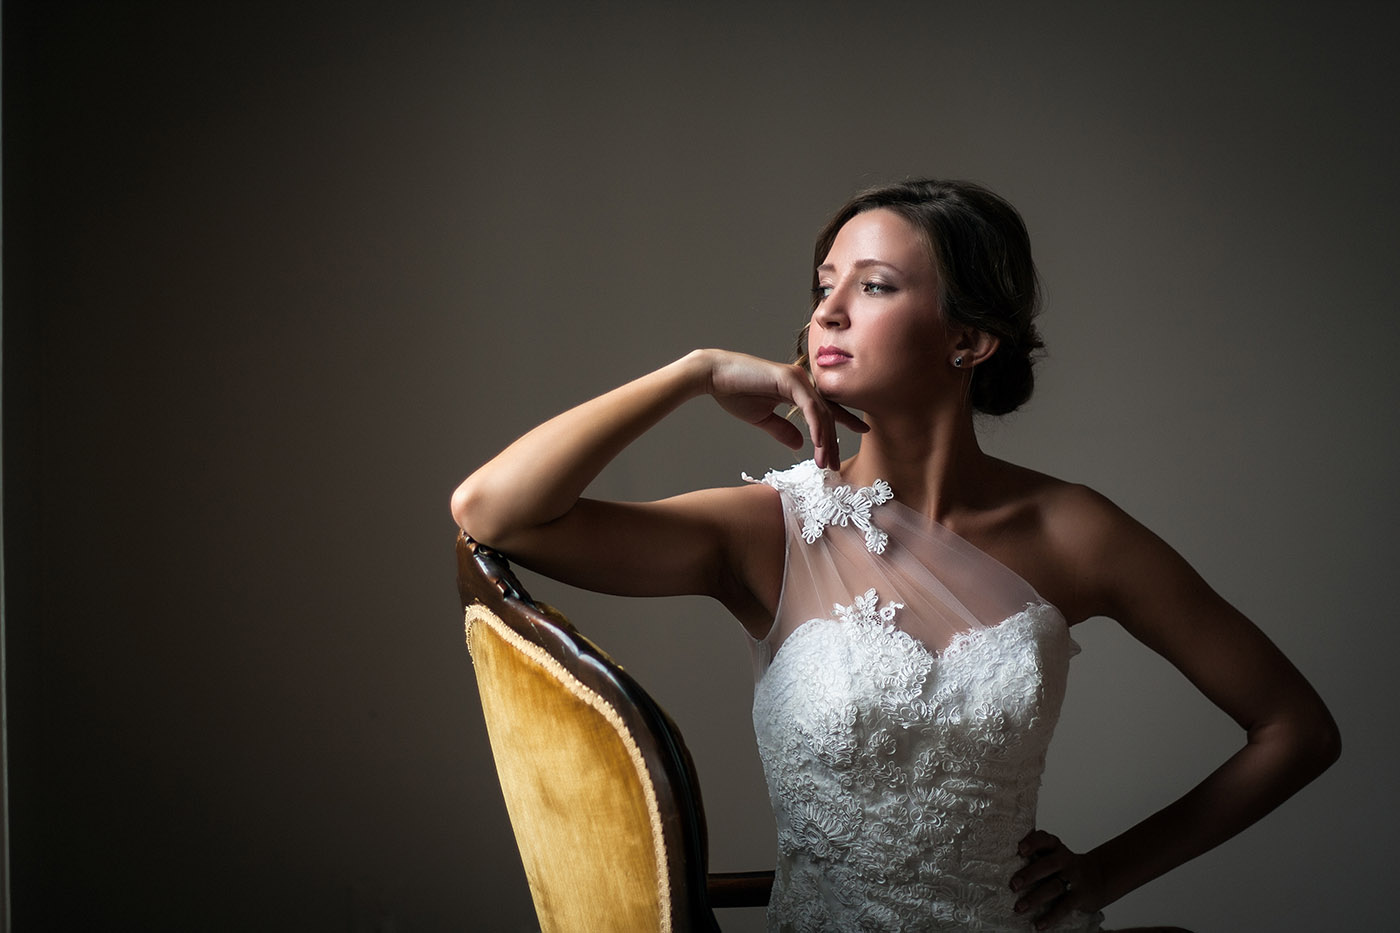 Fashion Photography: Woman in dress sitting in a chair